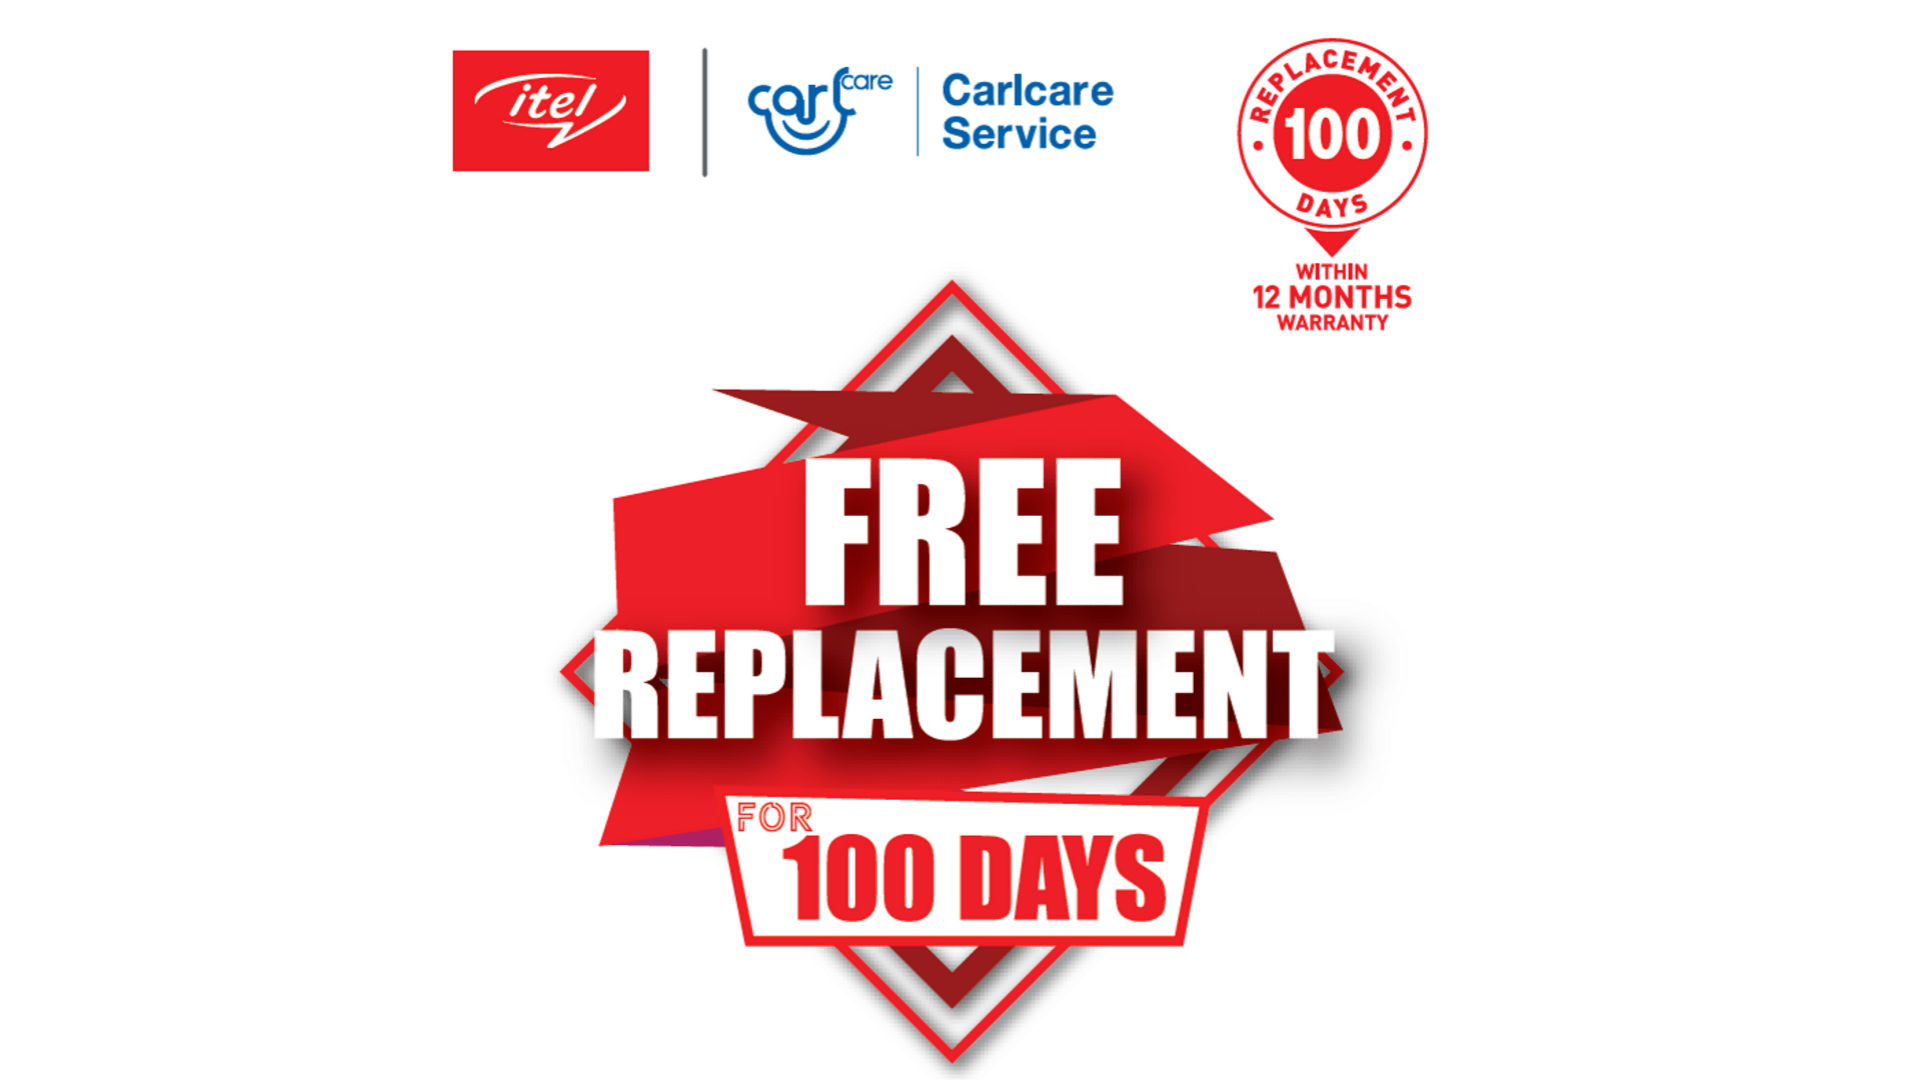 itel announces First 100 days Free Phone Replacement